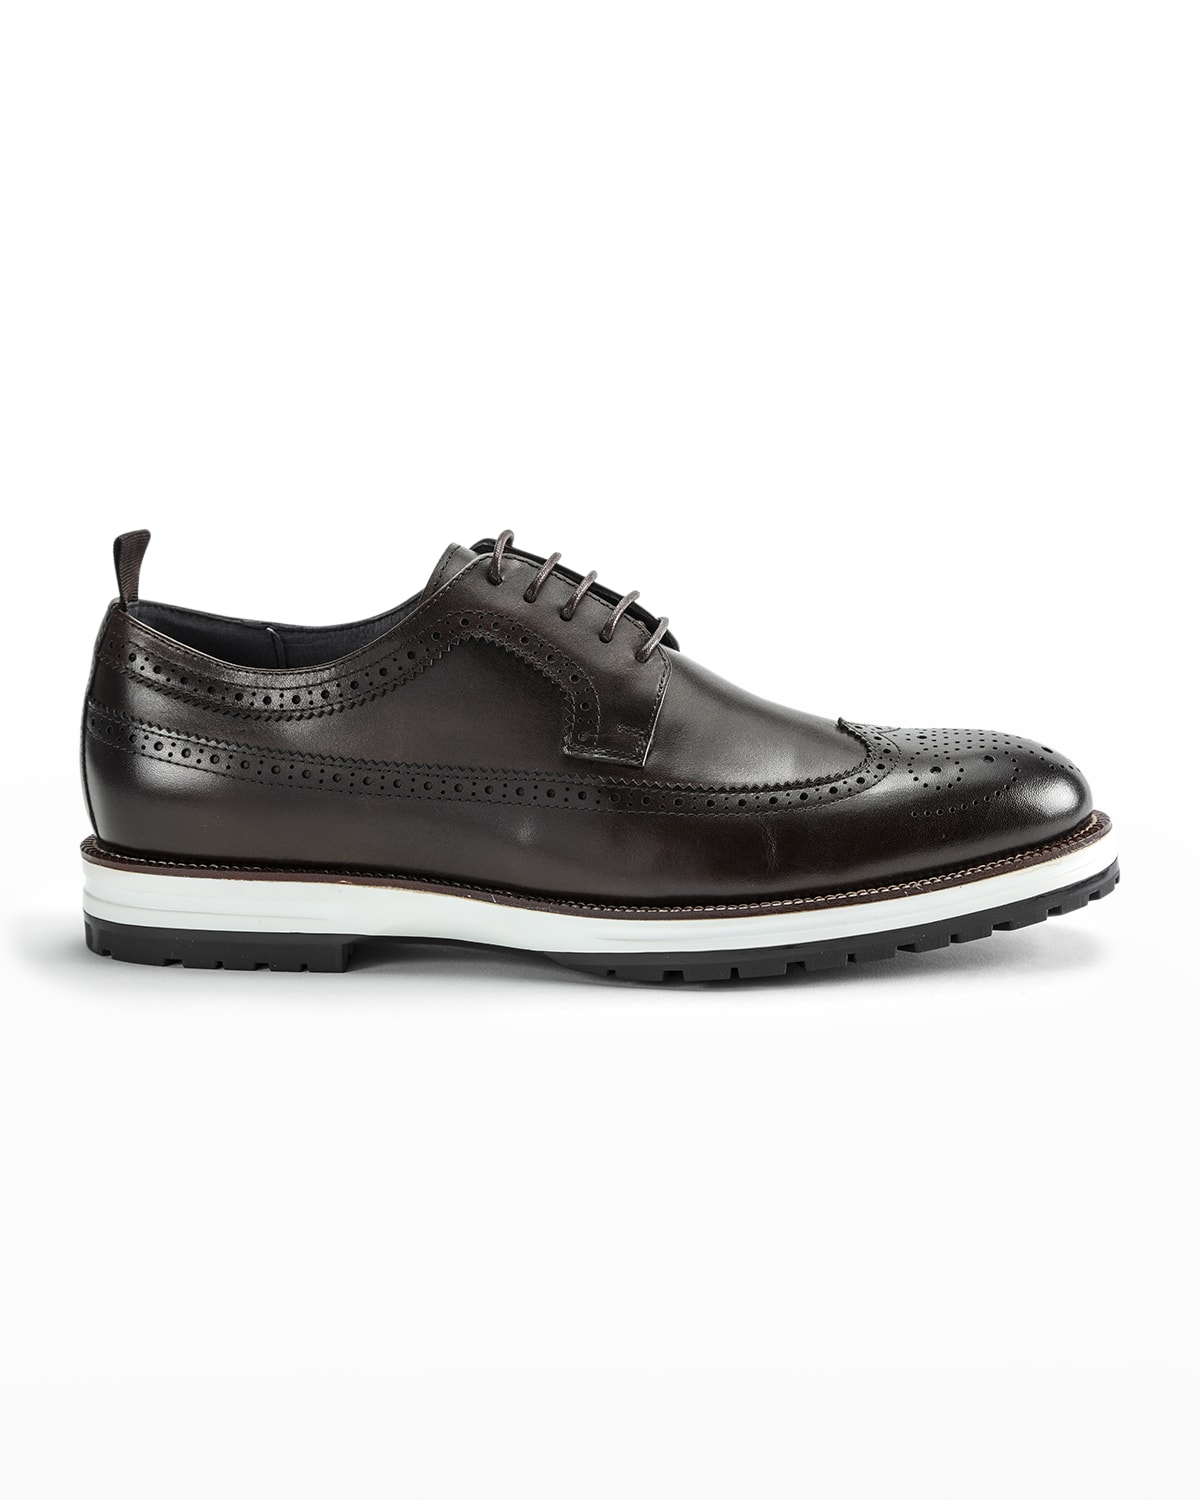 Men's Louis Hybrid Wing-Tip Leather Derby Shoes